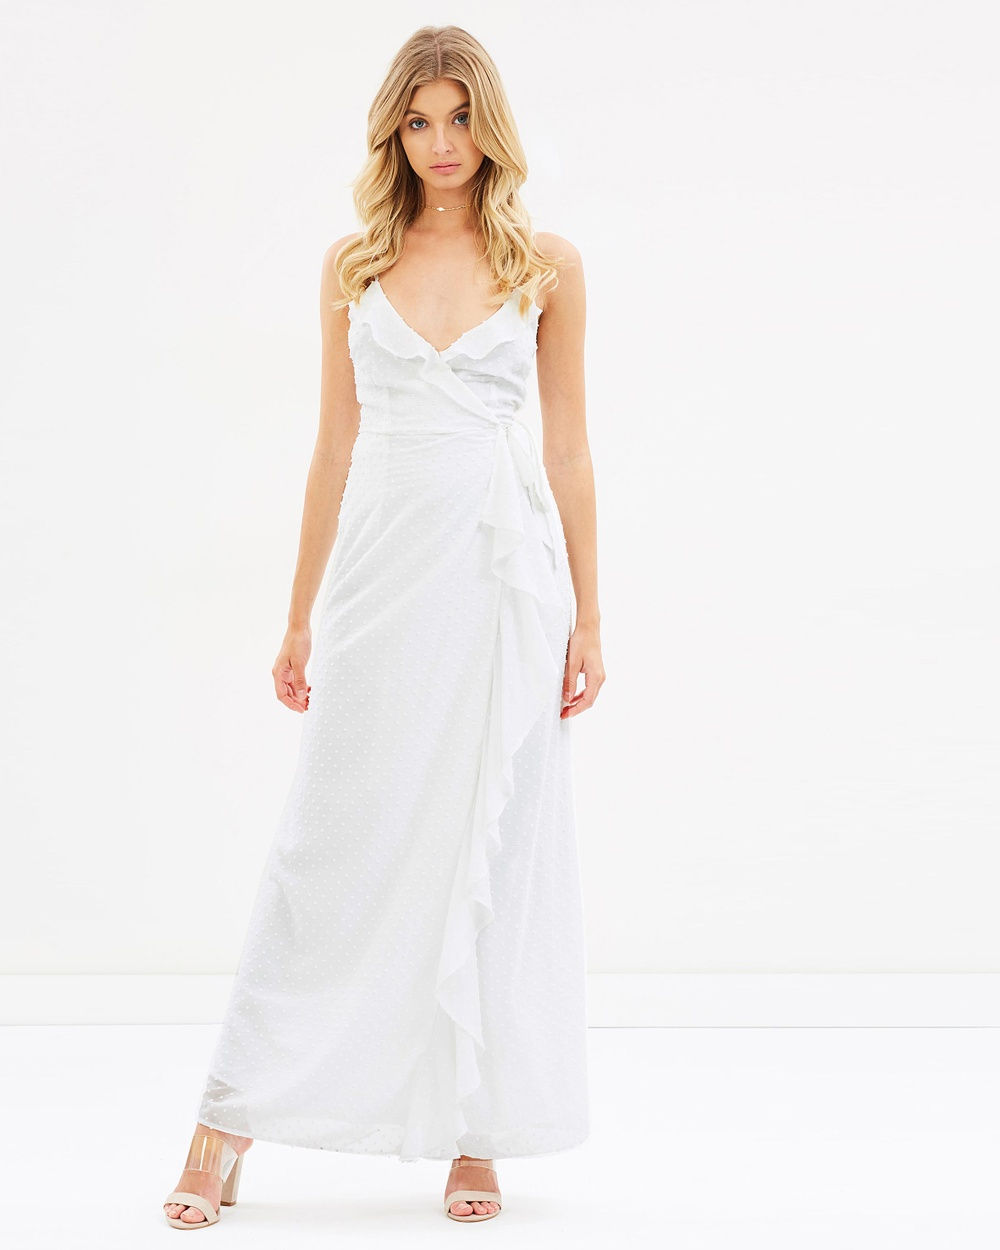 Atmos & Here ICONIC EXCLUSIVE Jules Wrap Maxi Dress Dresses White ICONIC EXCLUSIVE Jules Wrap Maxi Dress